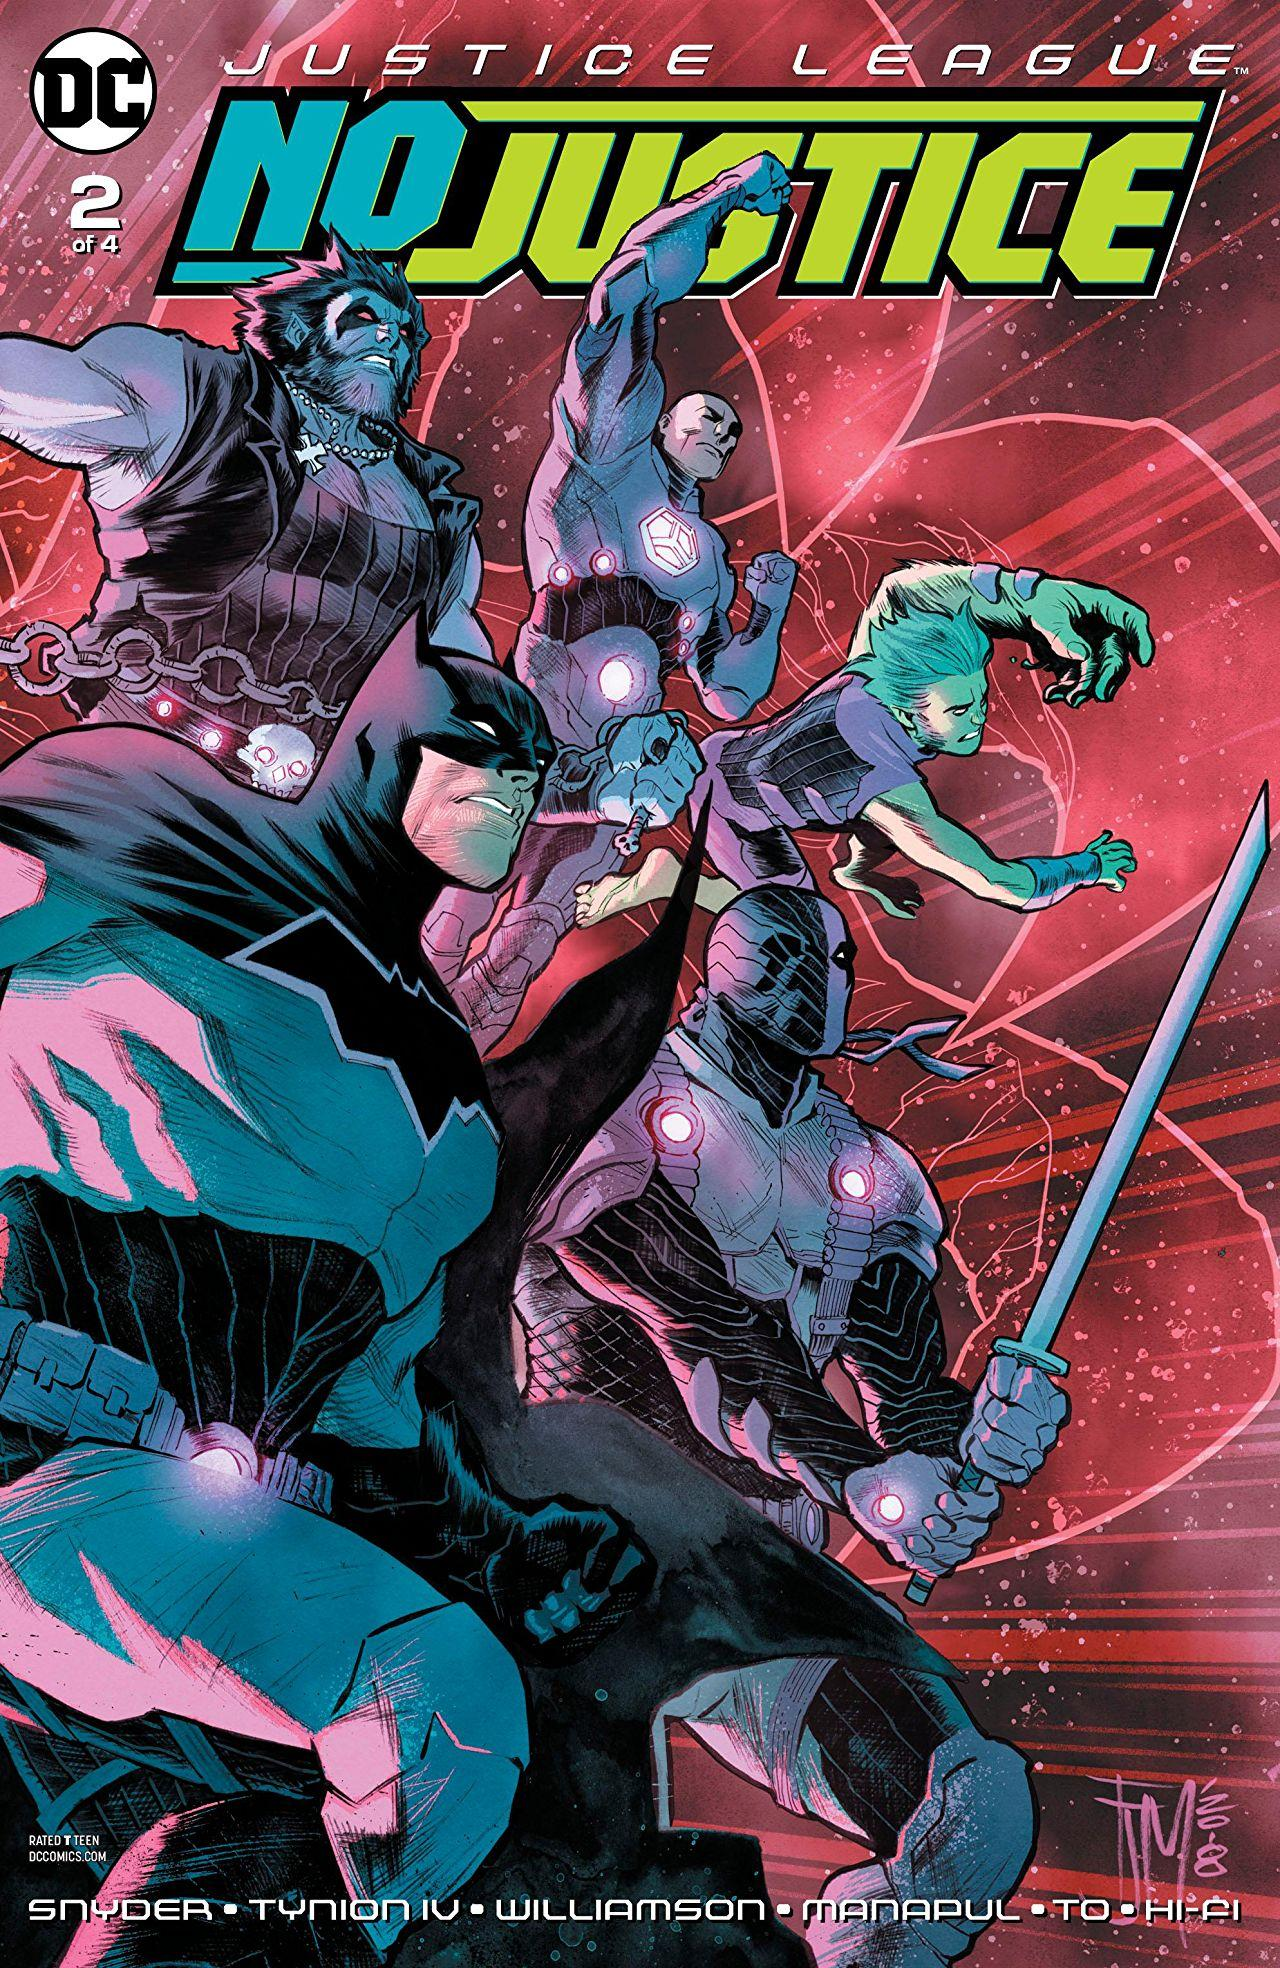 Justice League: No Justice Vol. 1 #2